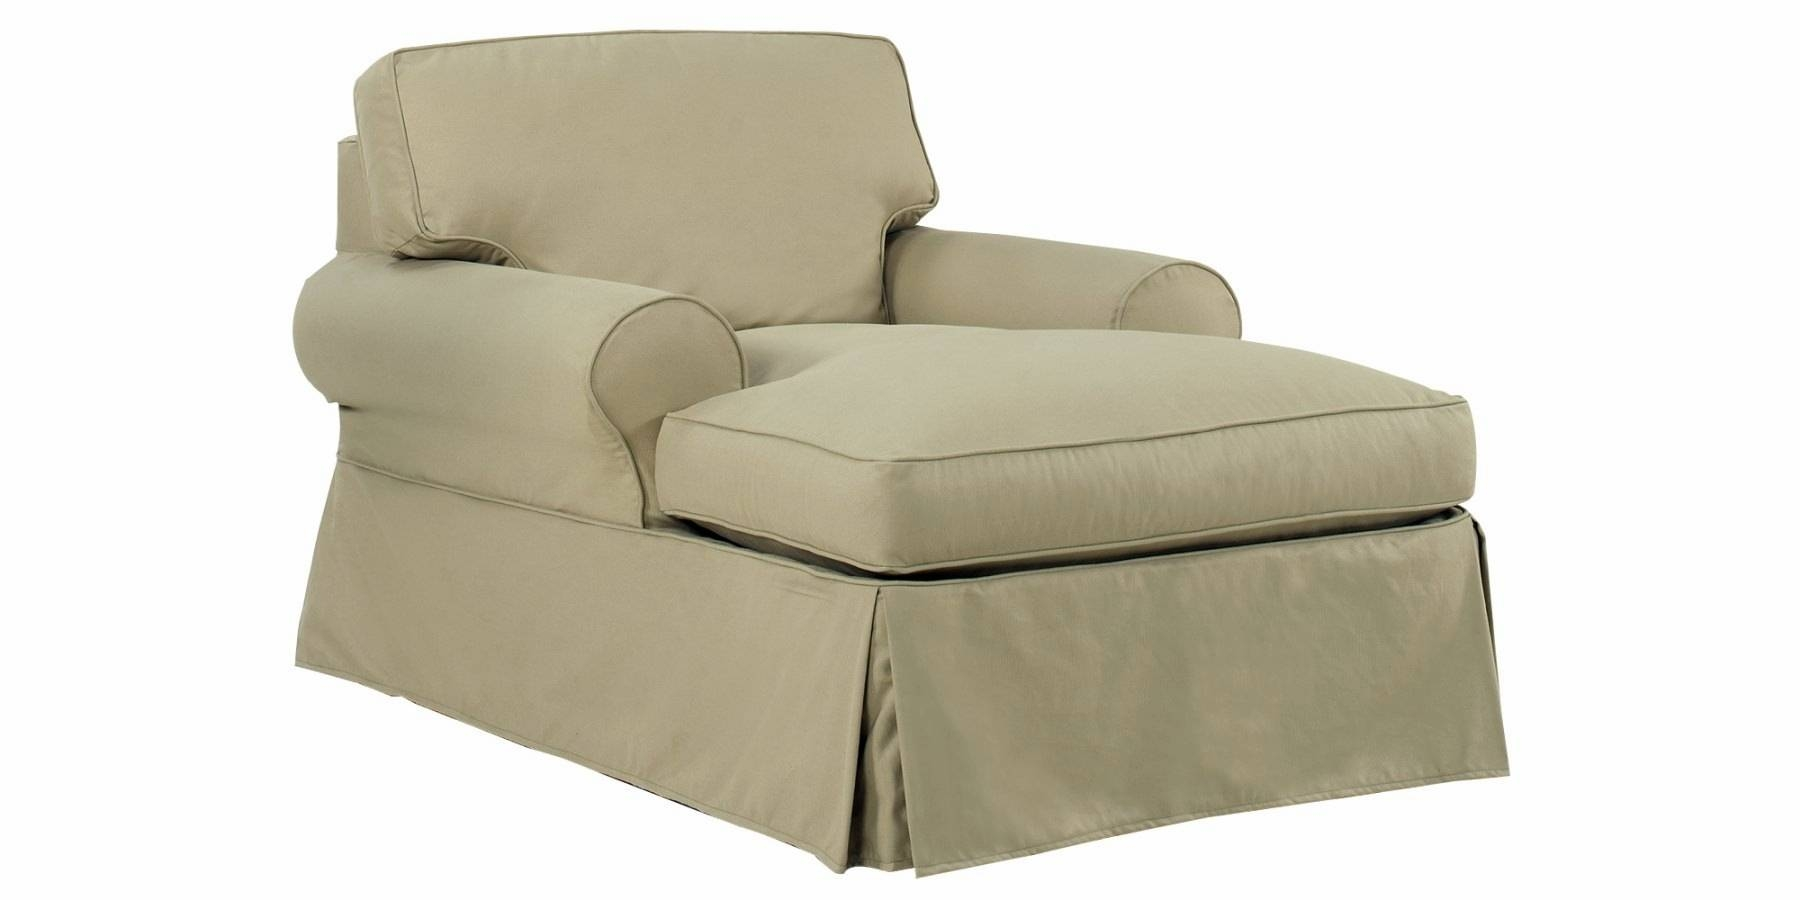 Chaise Chair Slipcover - Thesecretconsul within Slipcovers for Chaise Lounge Sofas (Image 1 of 15)